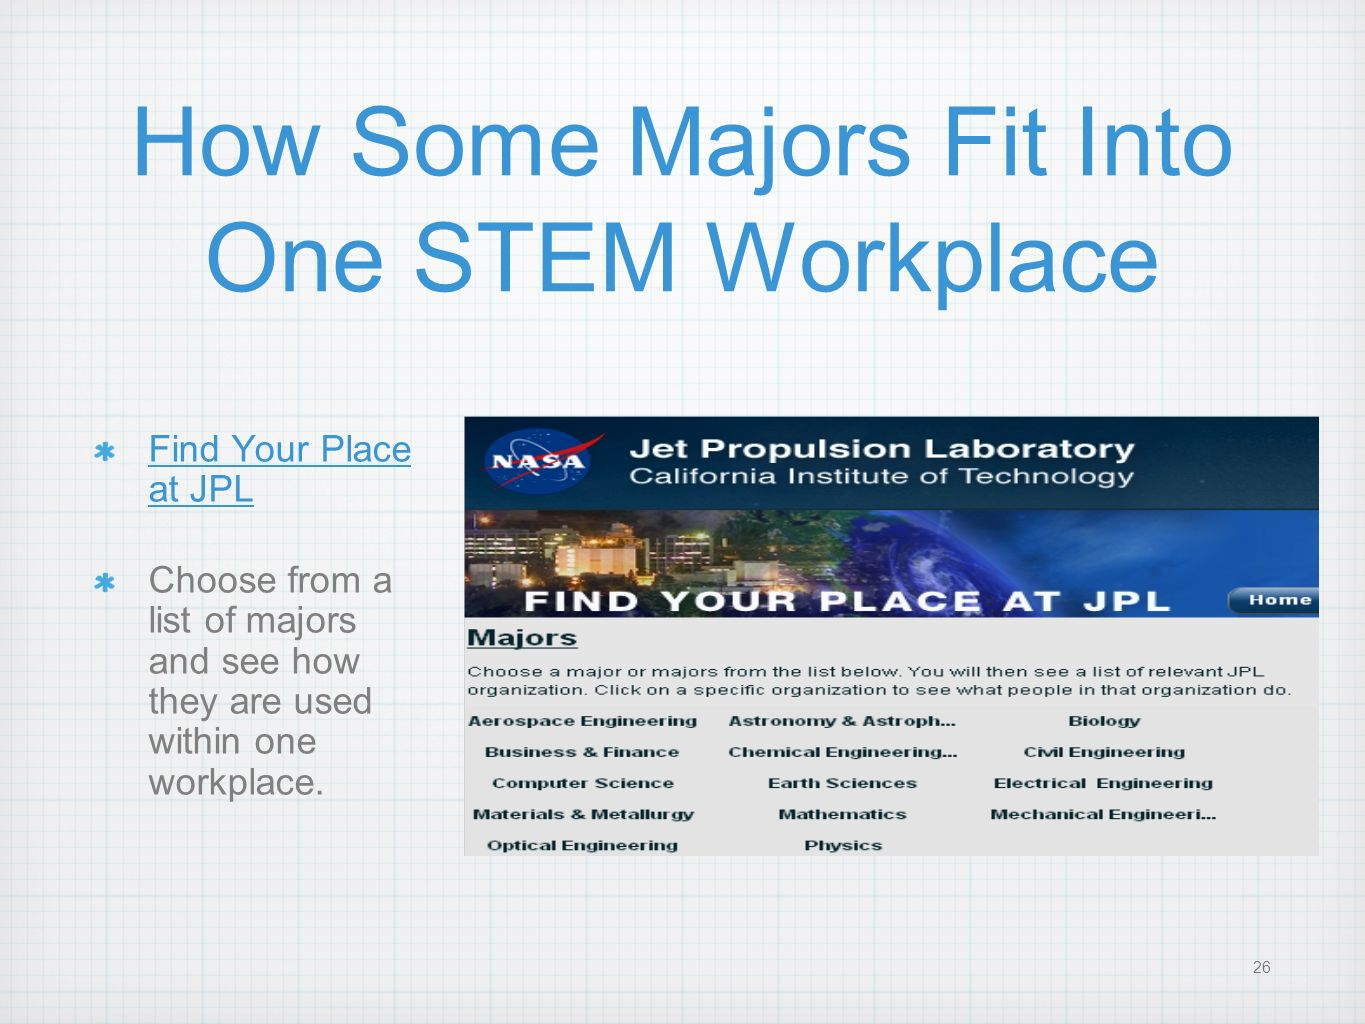 How Some Majors Fit Into One STEM Workplace